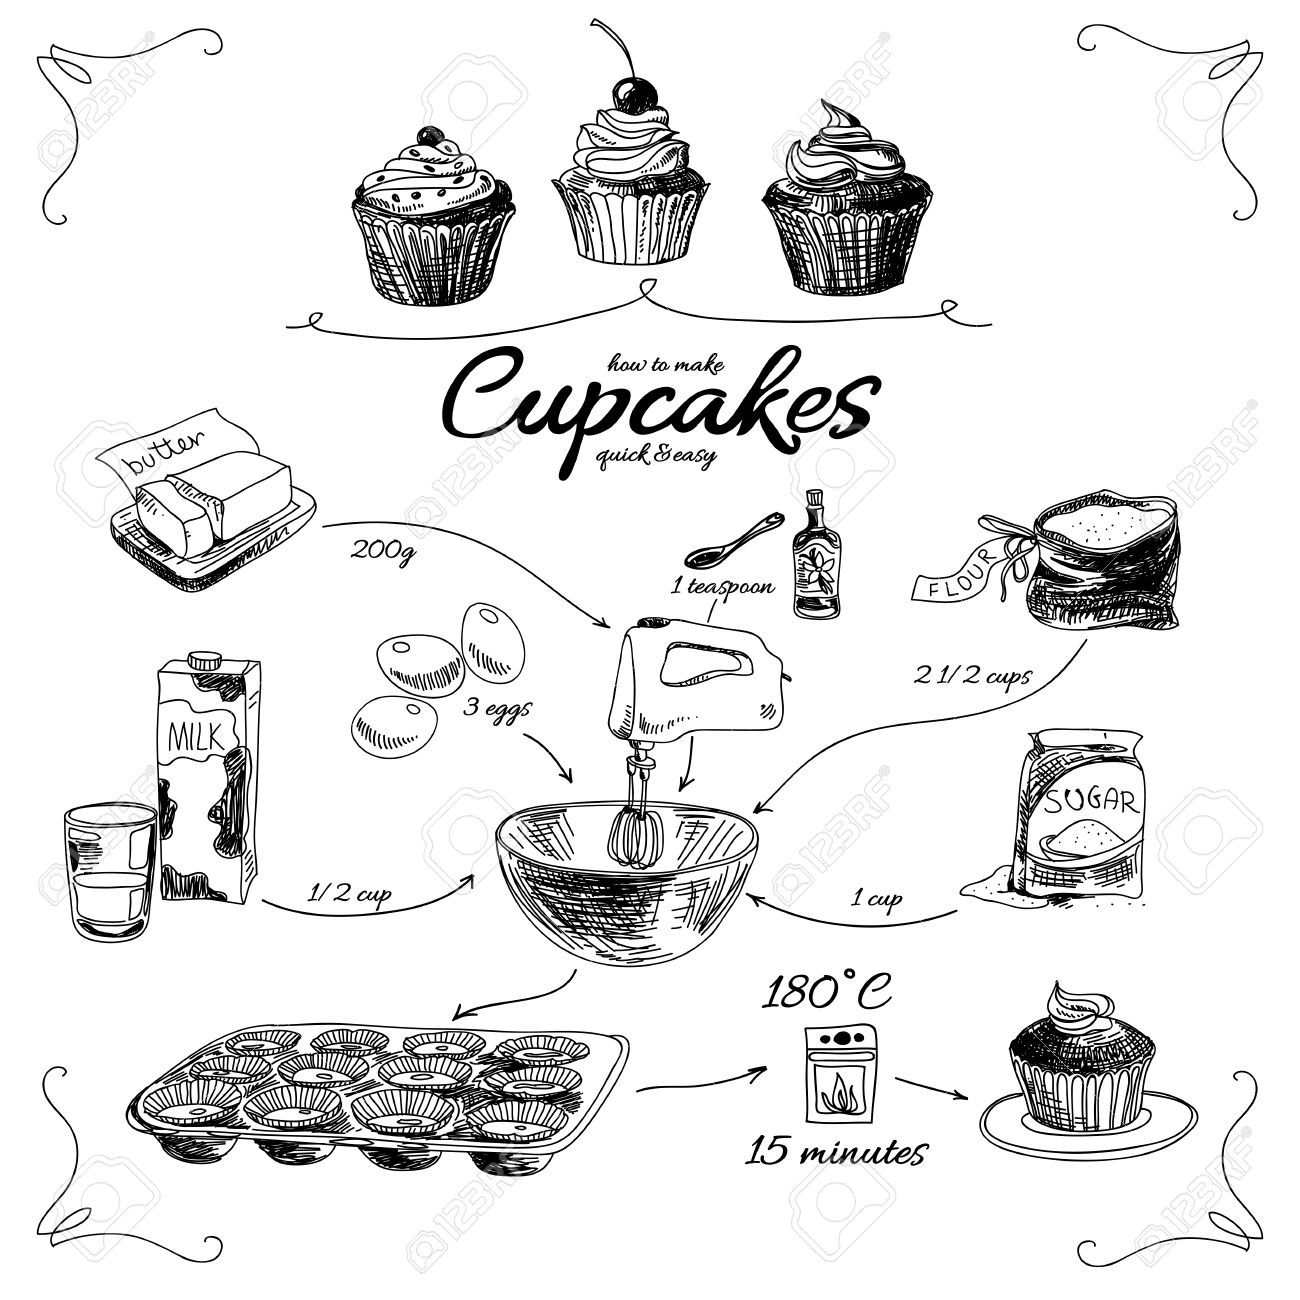 Simple cupcake recipe. Step by step. Hand drawn vector illustration. - 43333002